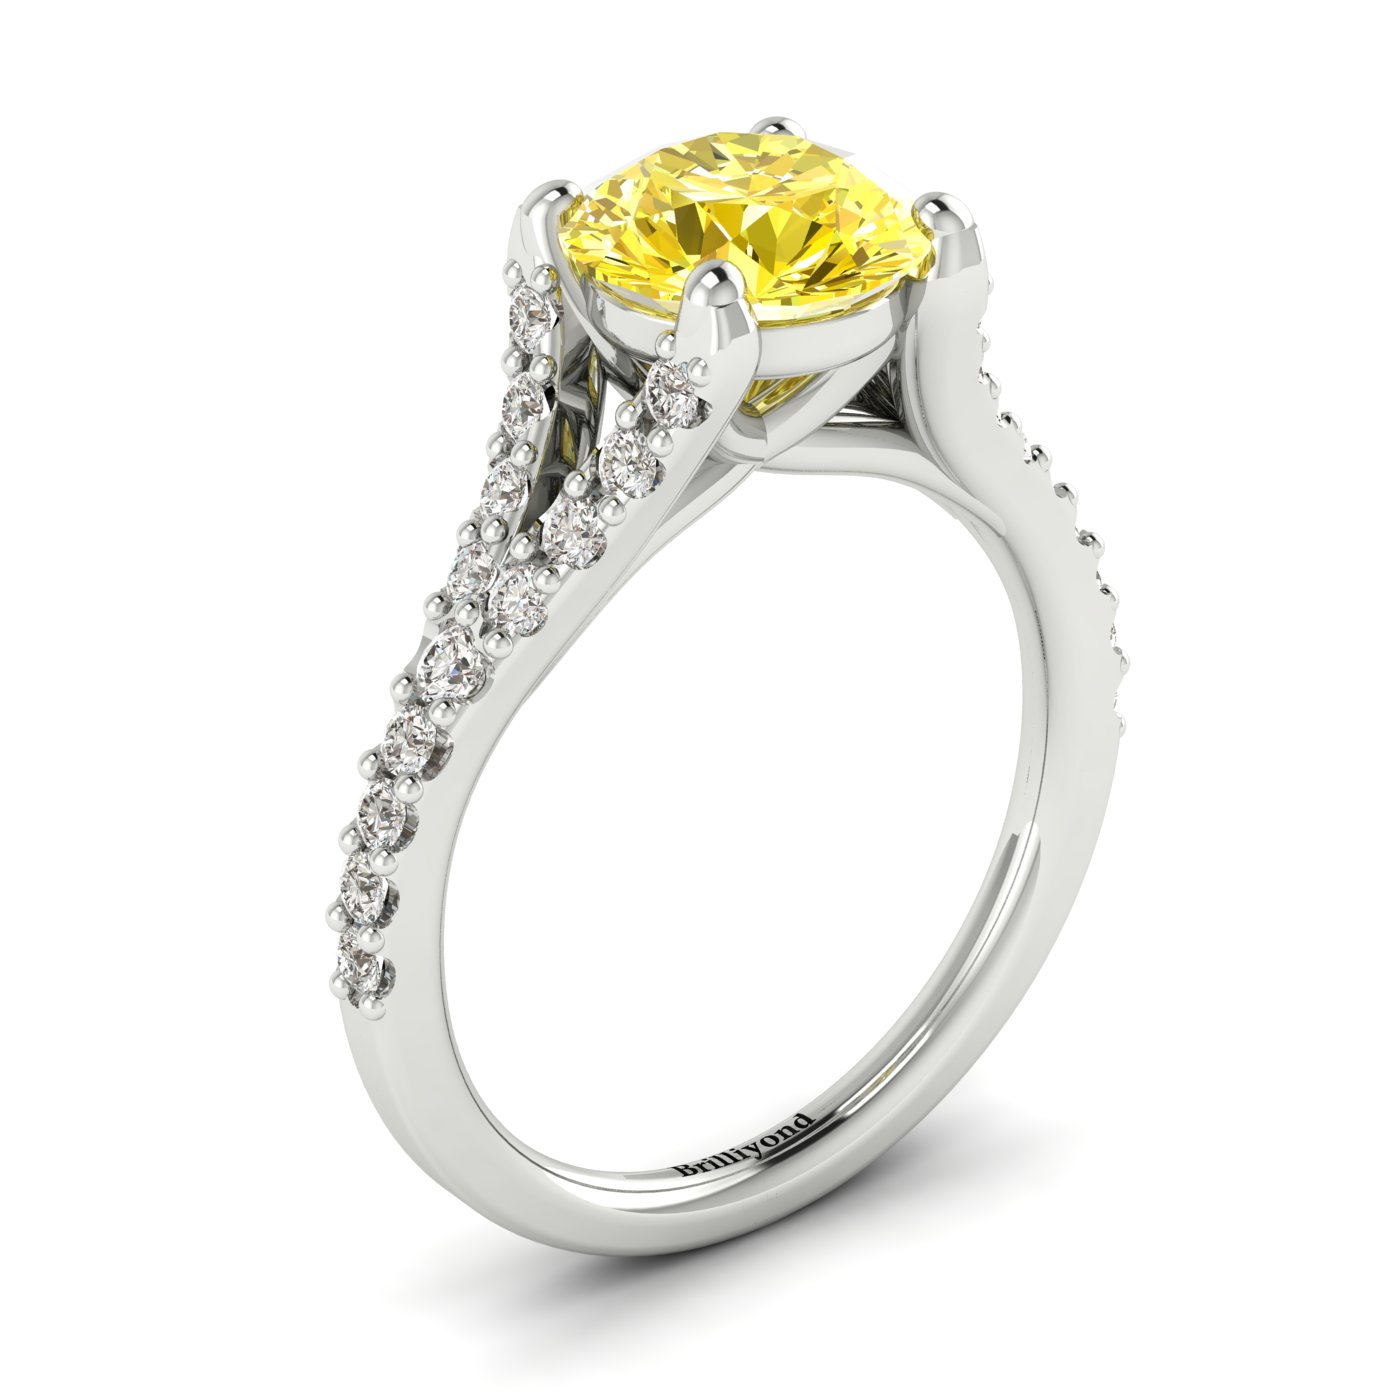 Juliana engagement ring featuring a 6mm round cut yellow Ceylon sapphire in four prongs.